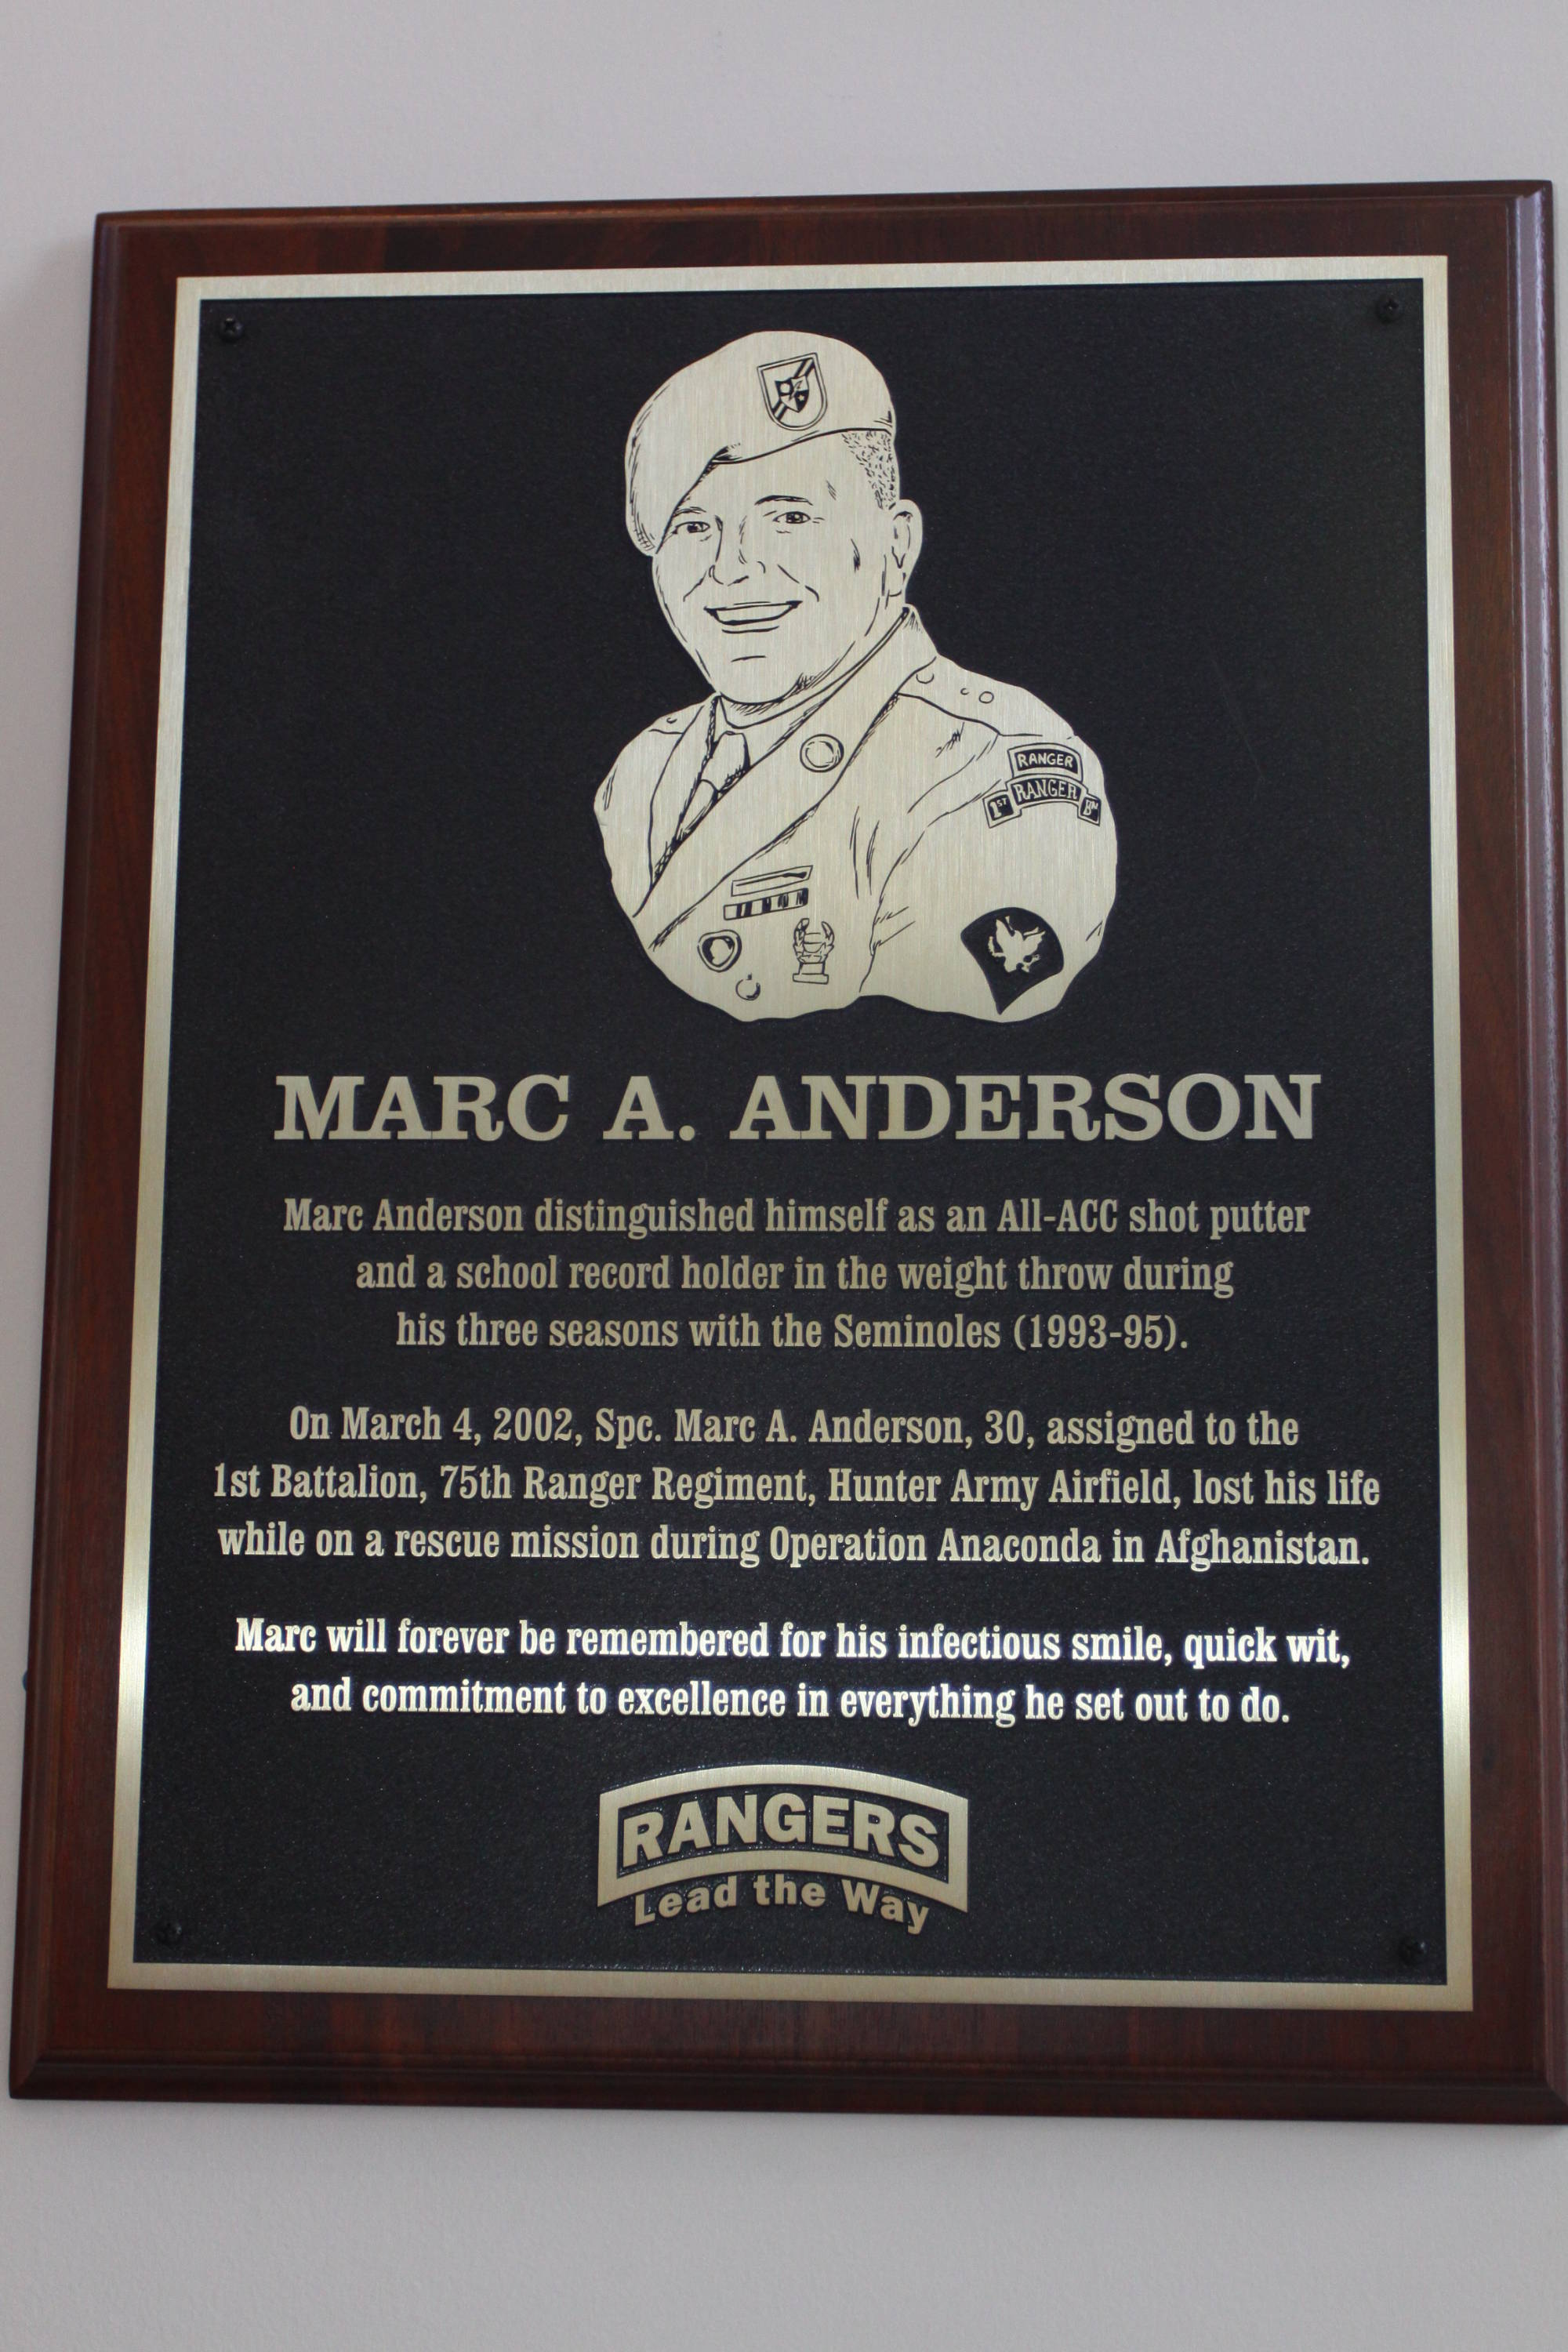 Spc. Marc A. Anderson was an All-ACC shot putter and a one-time school record-holder in the weight throw during his career with the Seminoles from 1993-95. Attached to the 1st Battalion, 75th Ranger Regiment, Anderson died in battle as part of Operation Anaconda on March 4, 2002.